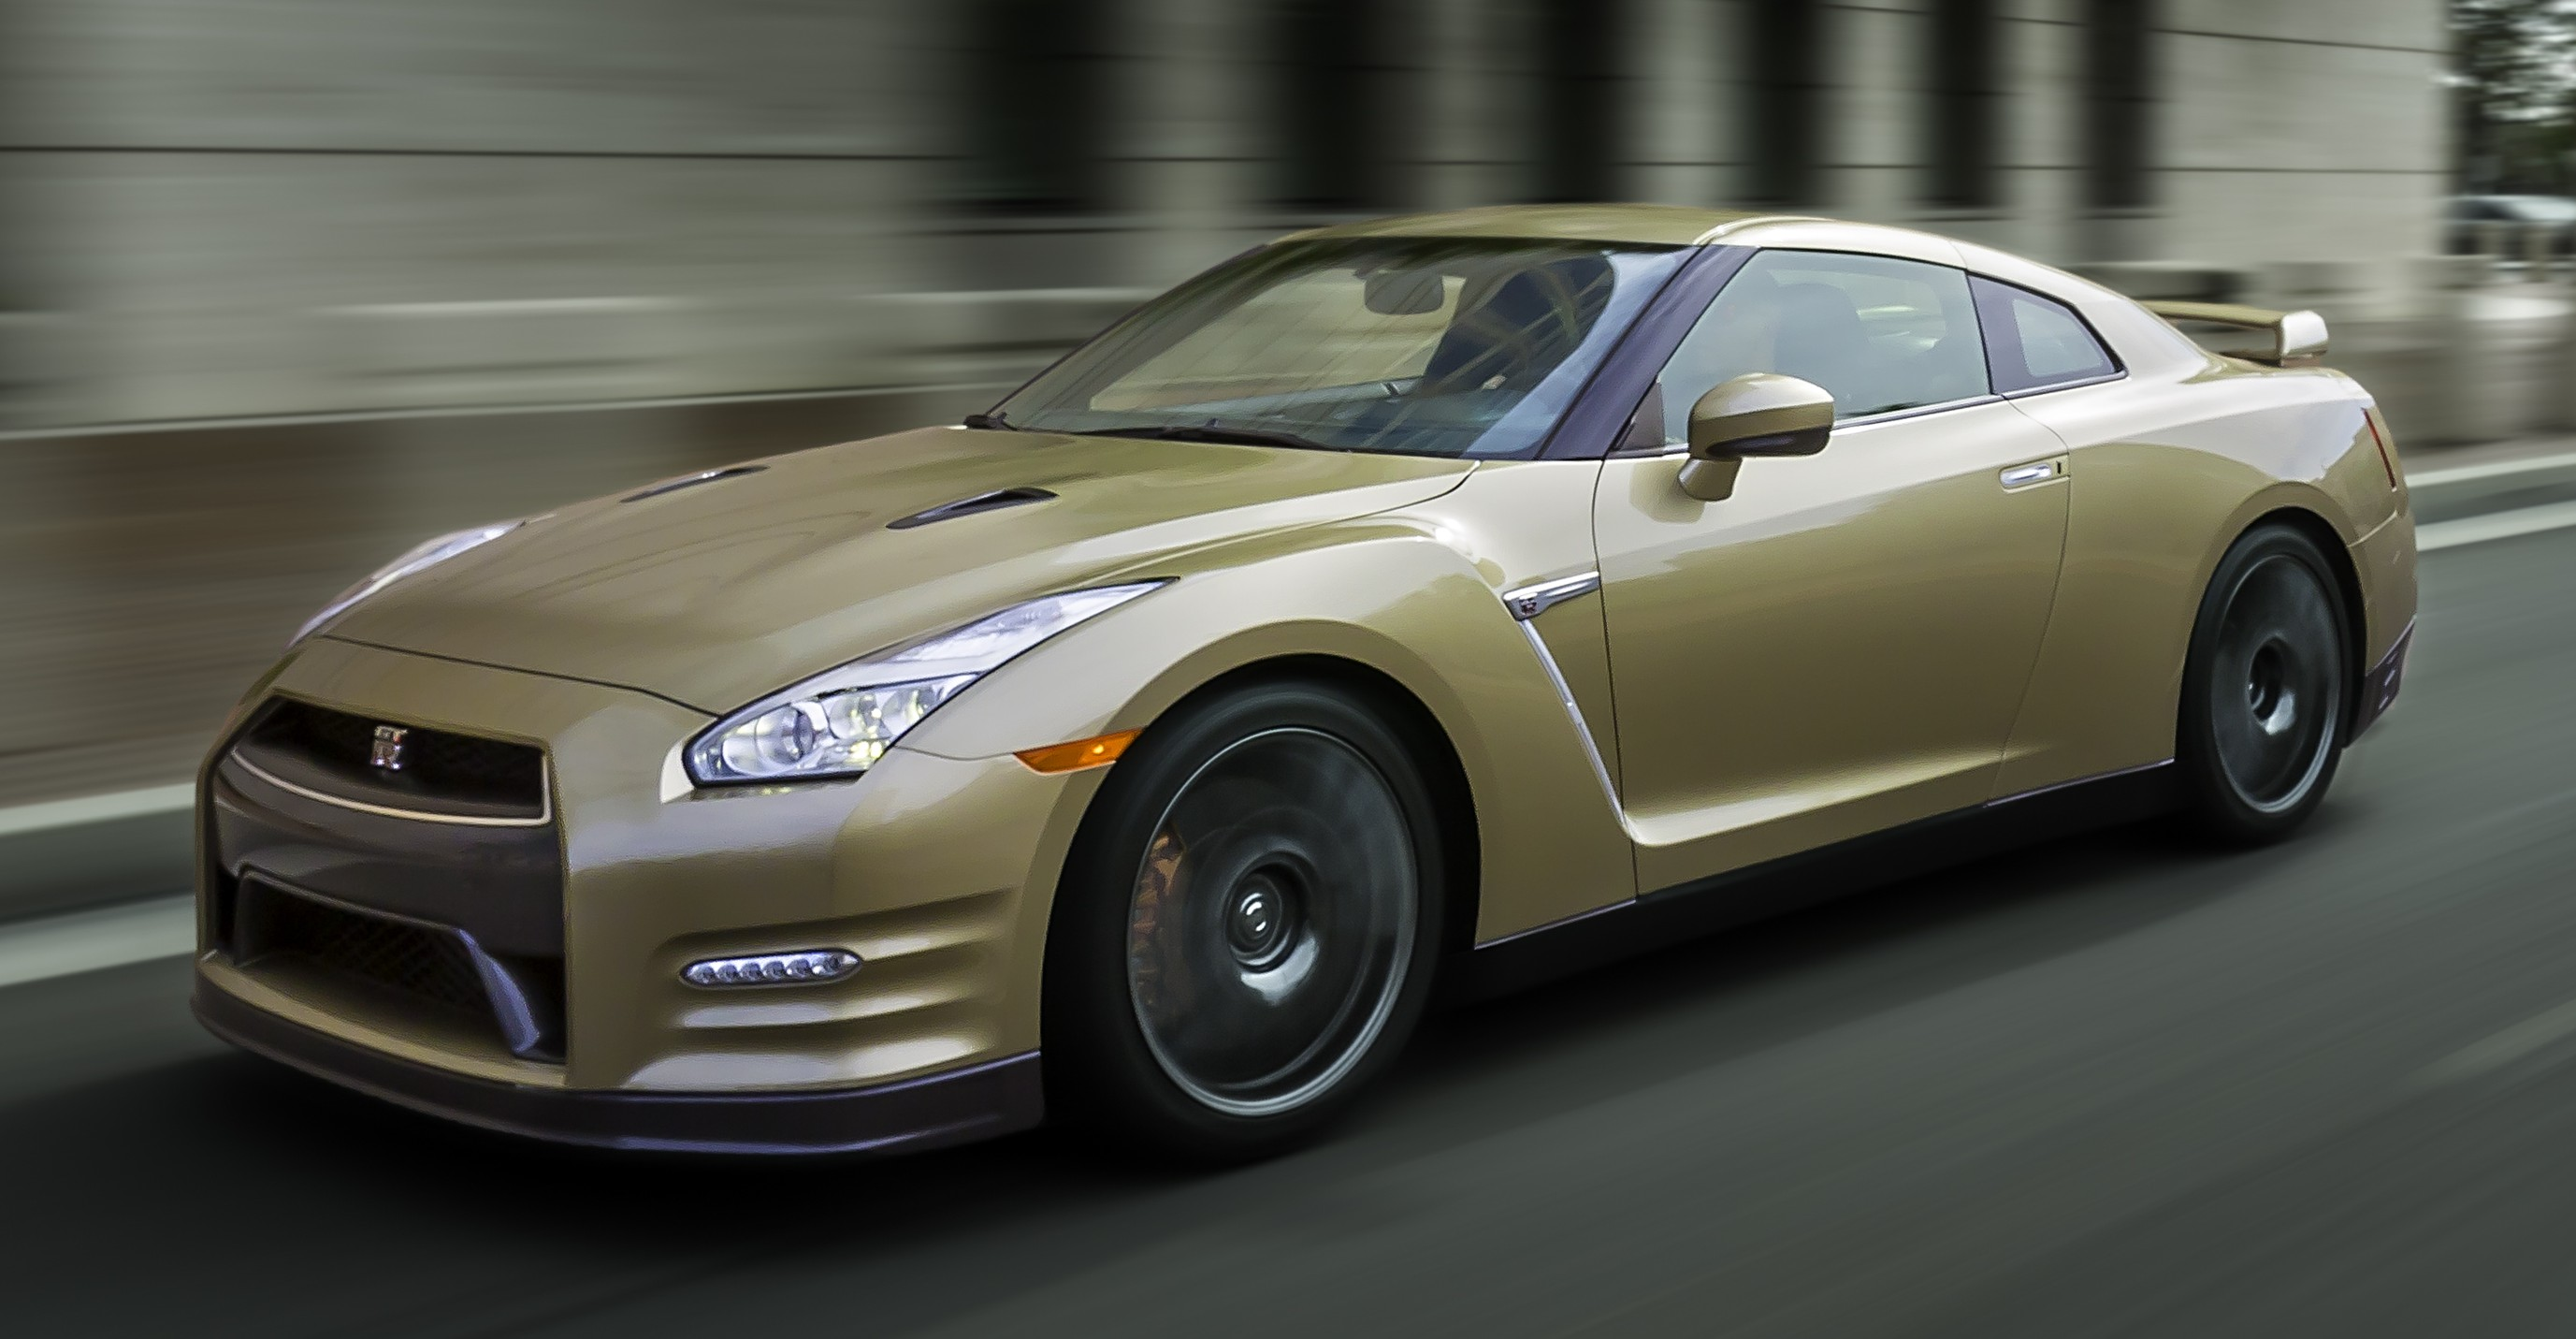 Nissan 2018 >> GALLERY: Nissan GT-R 45th Anniversary Gold Edition Paul Tan - Image 335100